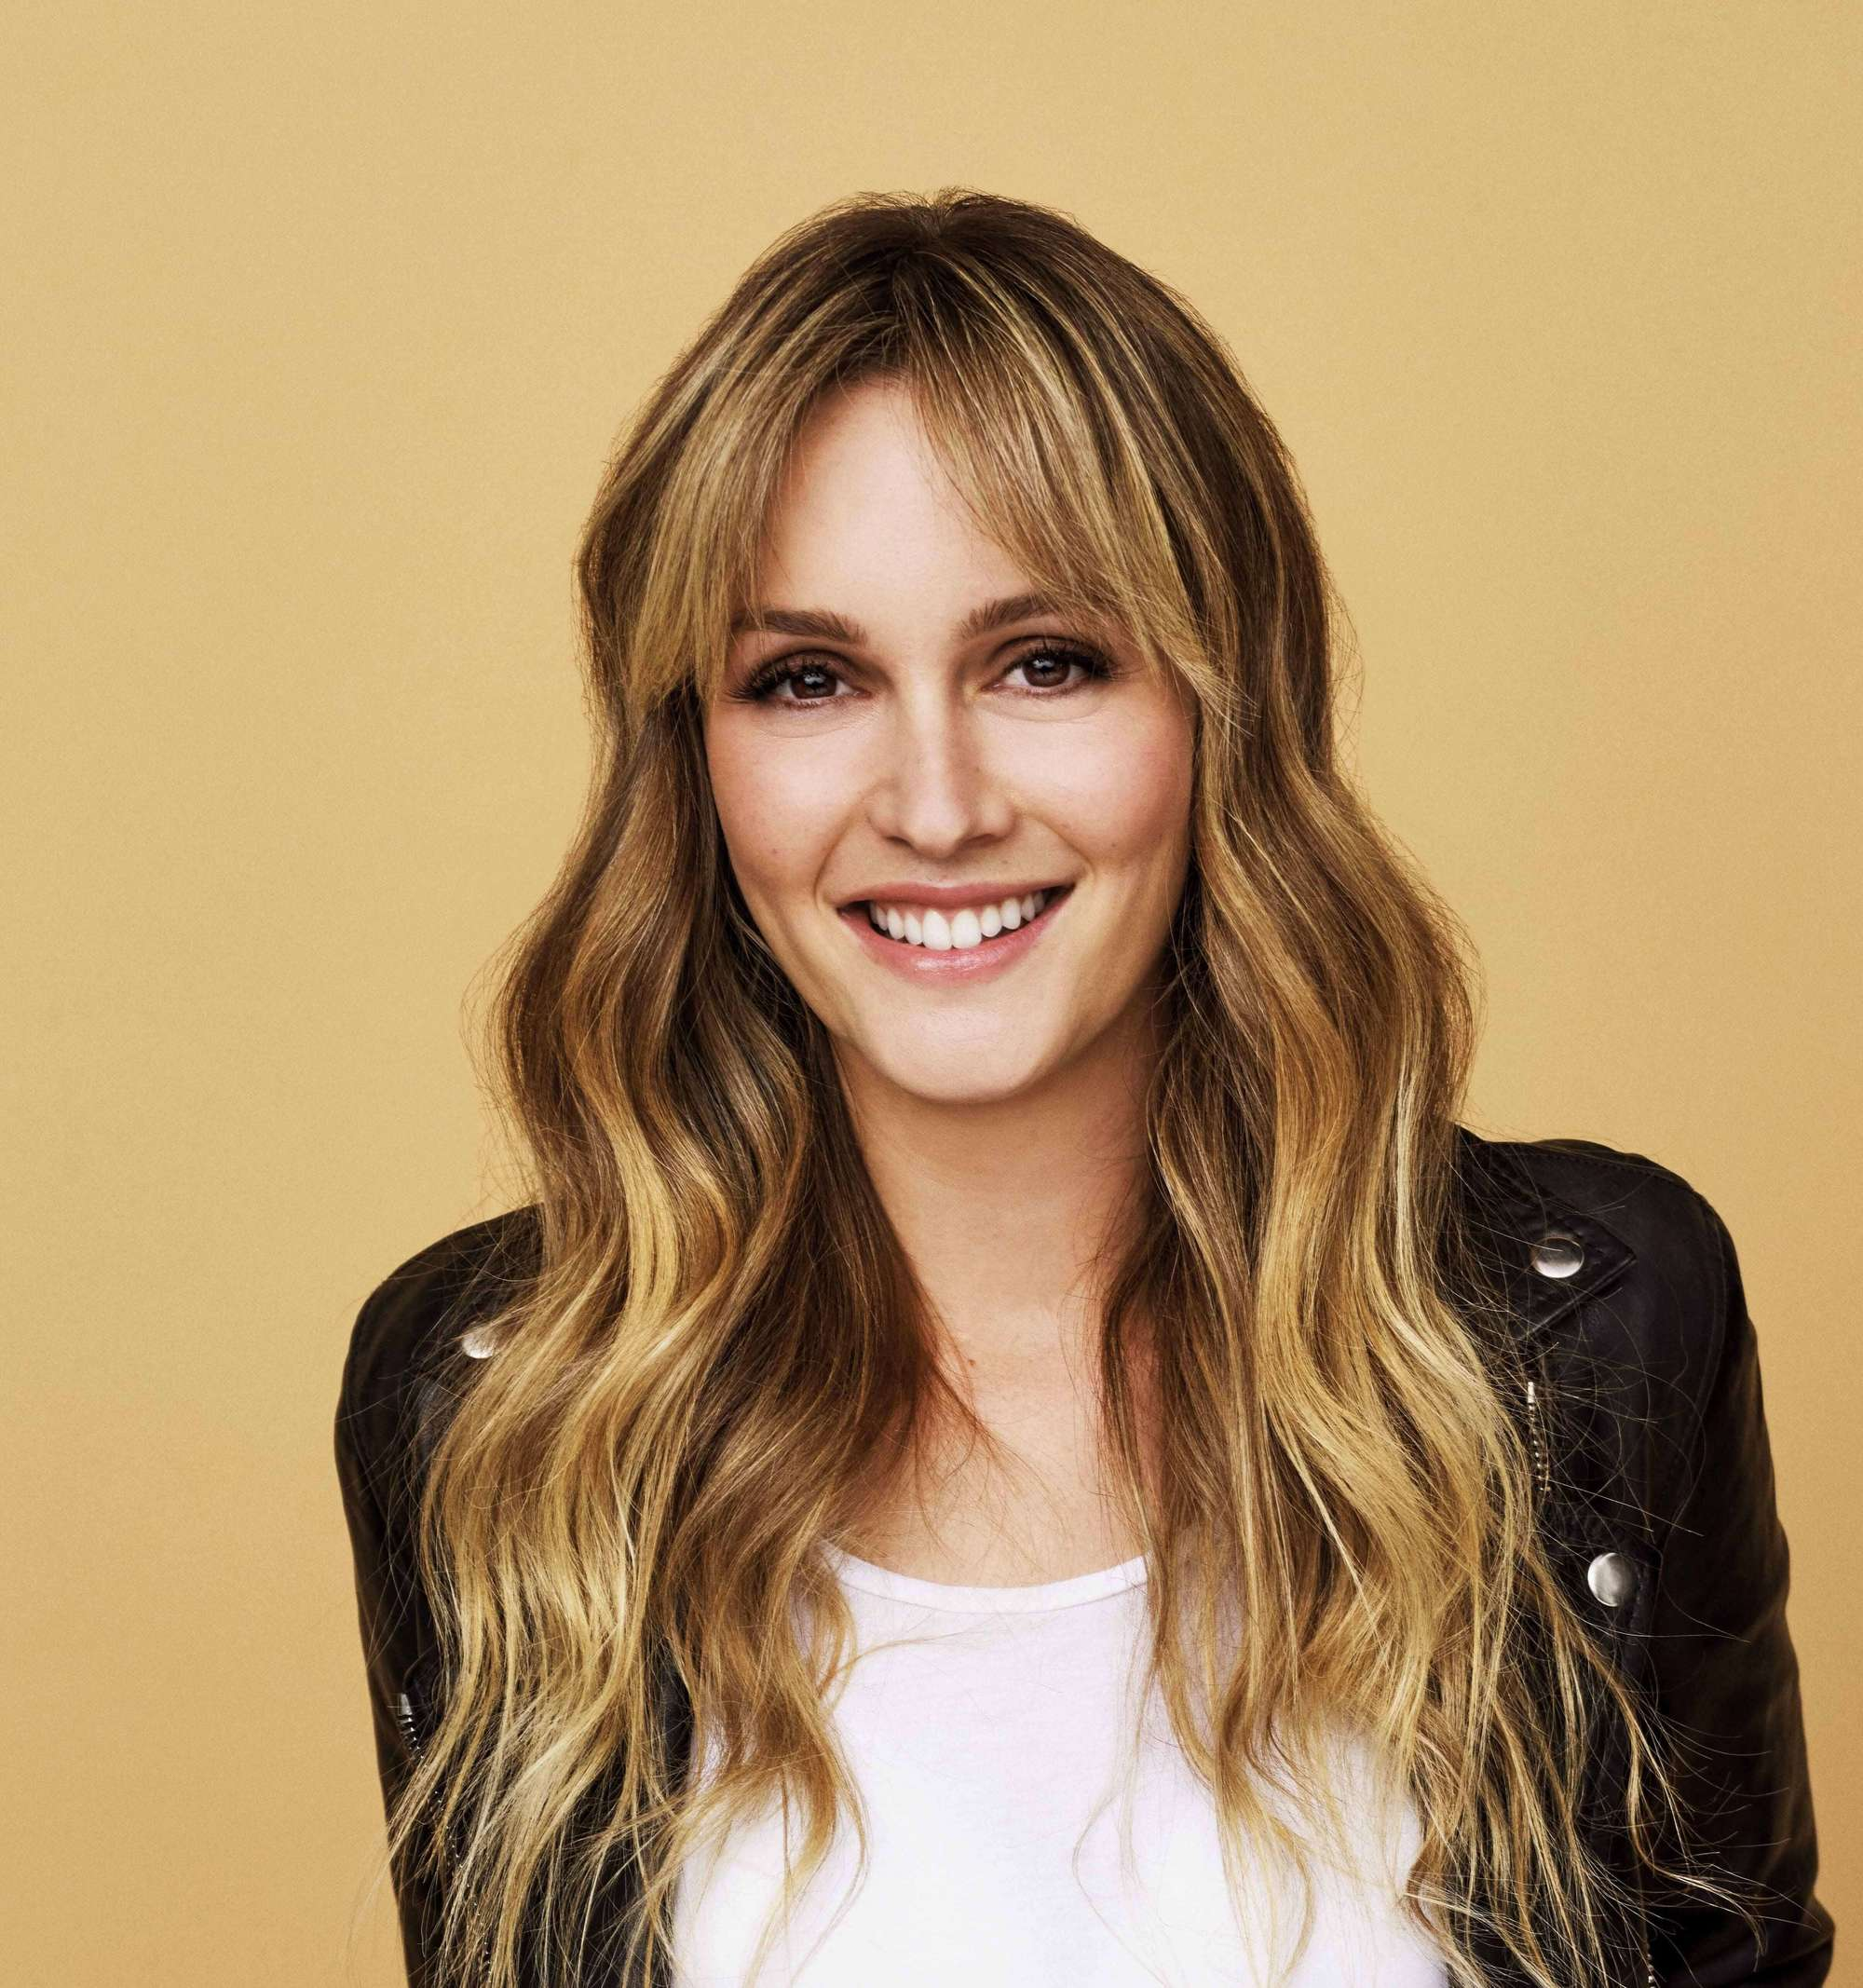 hihglighted blonde hair of a smiling woman